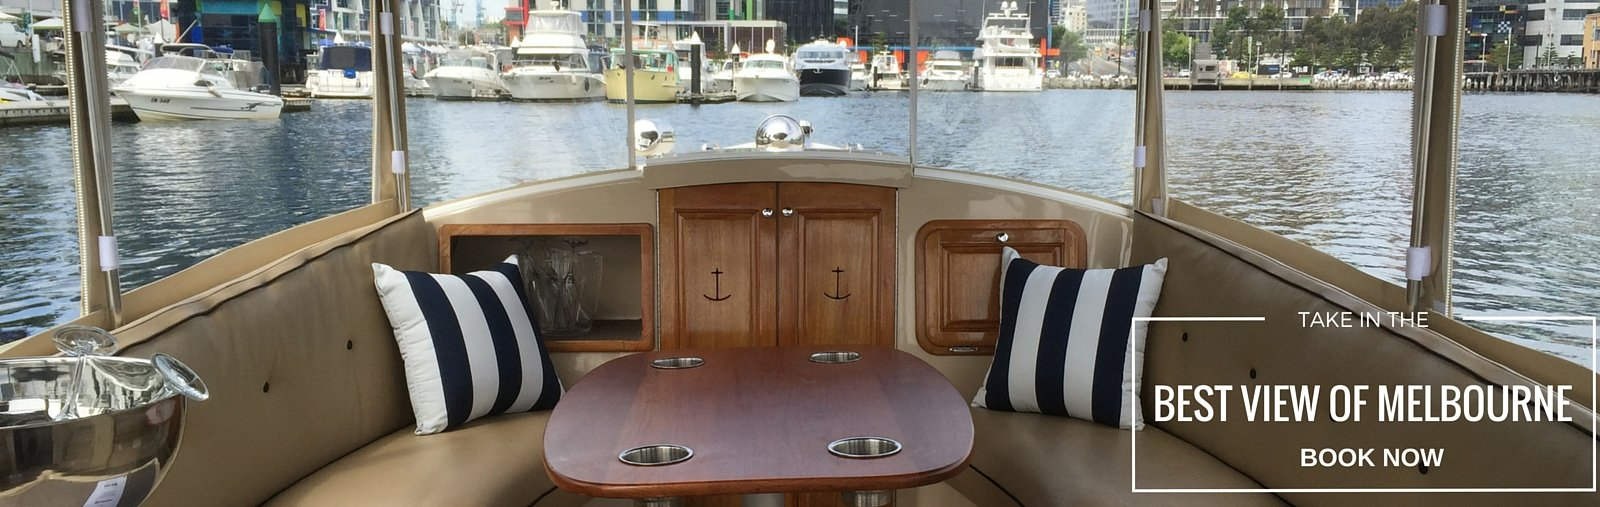 get the best seat in the house with Melbourne Boat Hire